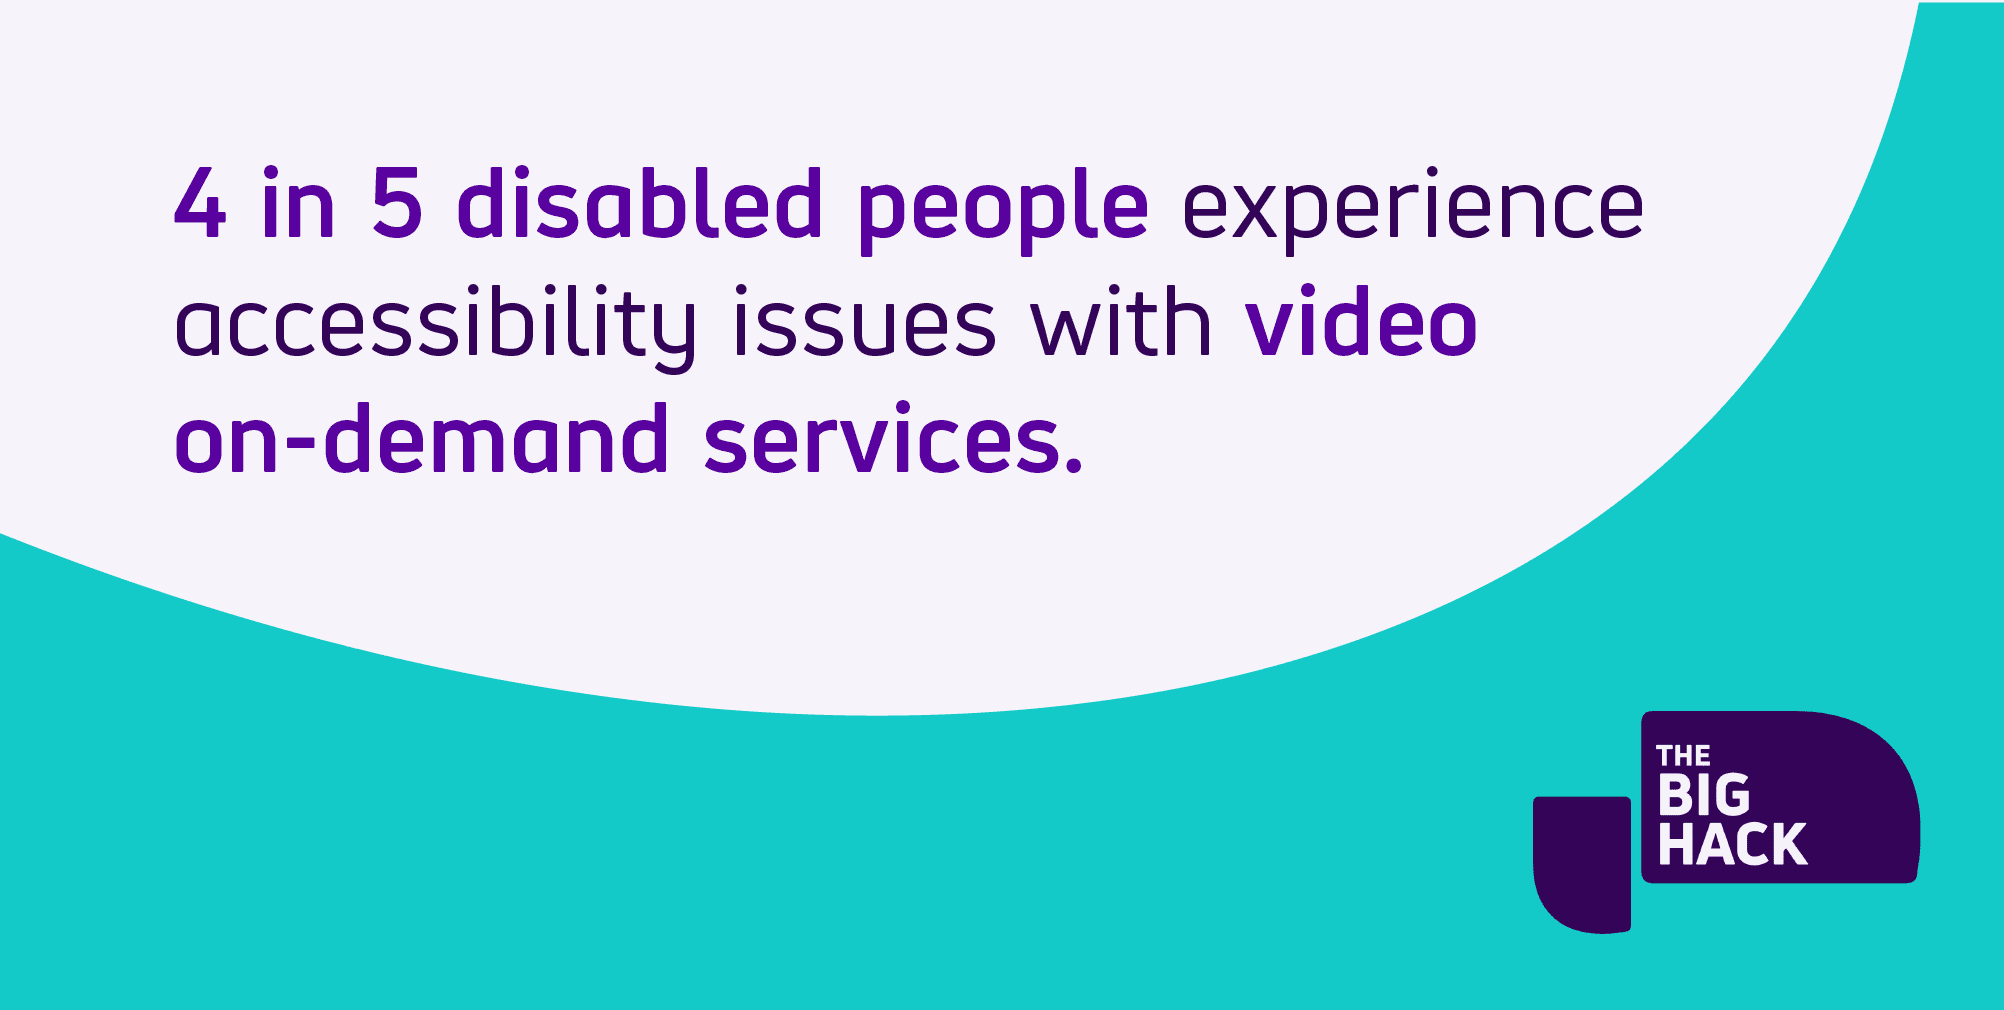 Text reads four in five disabled people experience accessibility issues with video on-demand services, from the Big Hack by Scope video streaming urvey.